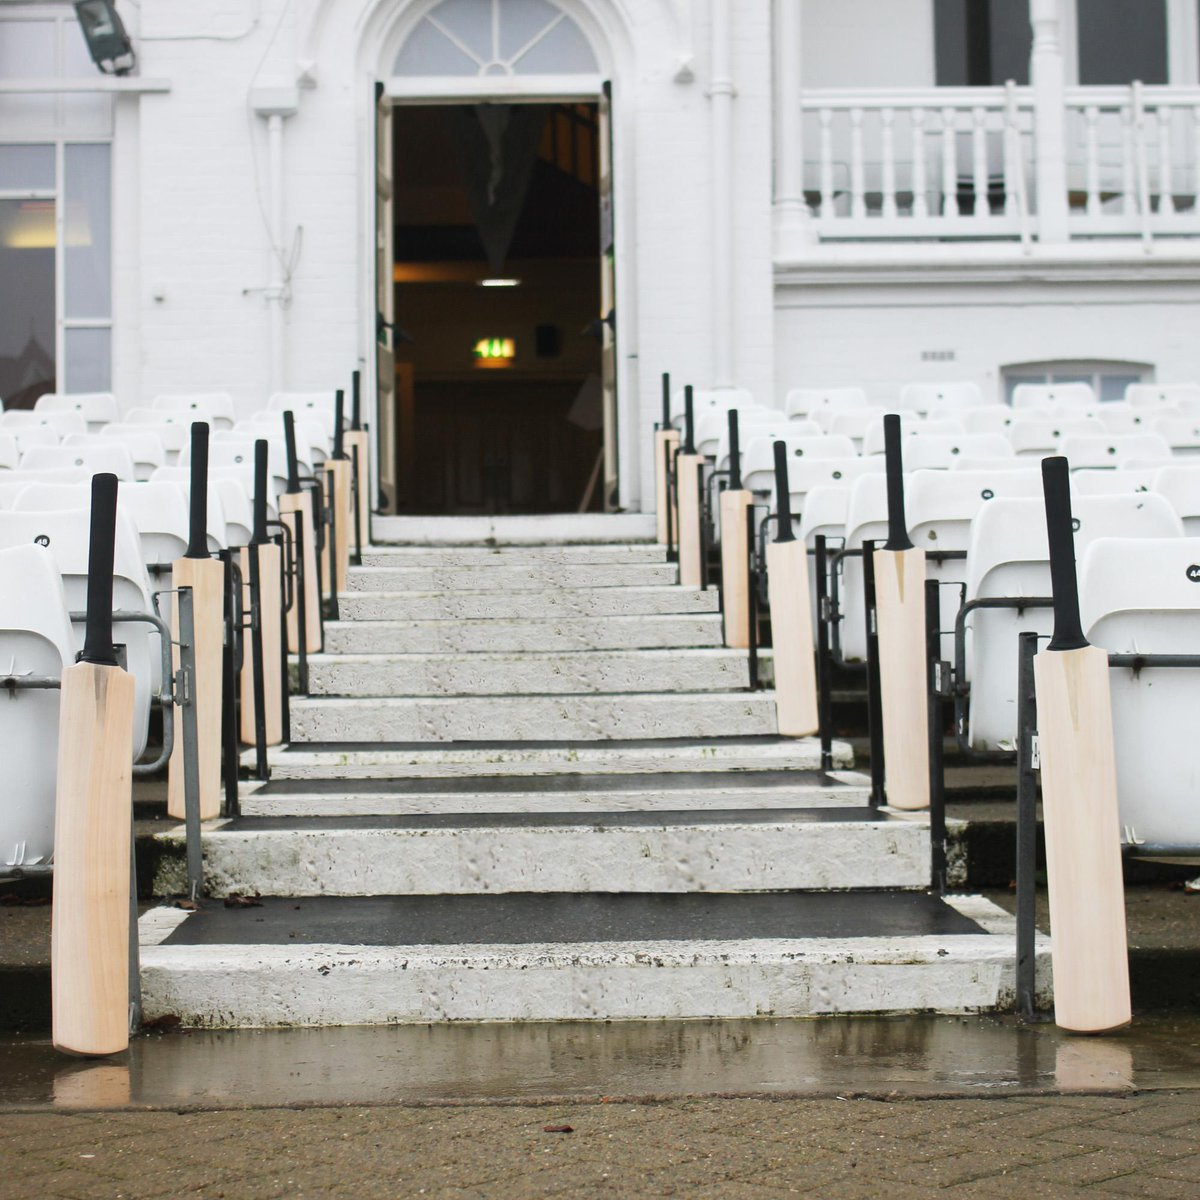 Bats line the Trent Bridge Pavilion steps #putoutyourbats http://t.co/hUtj8XZmq5